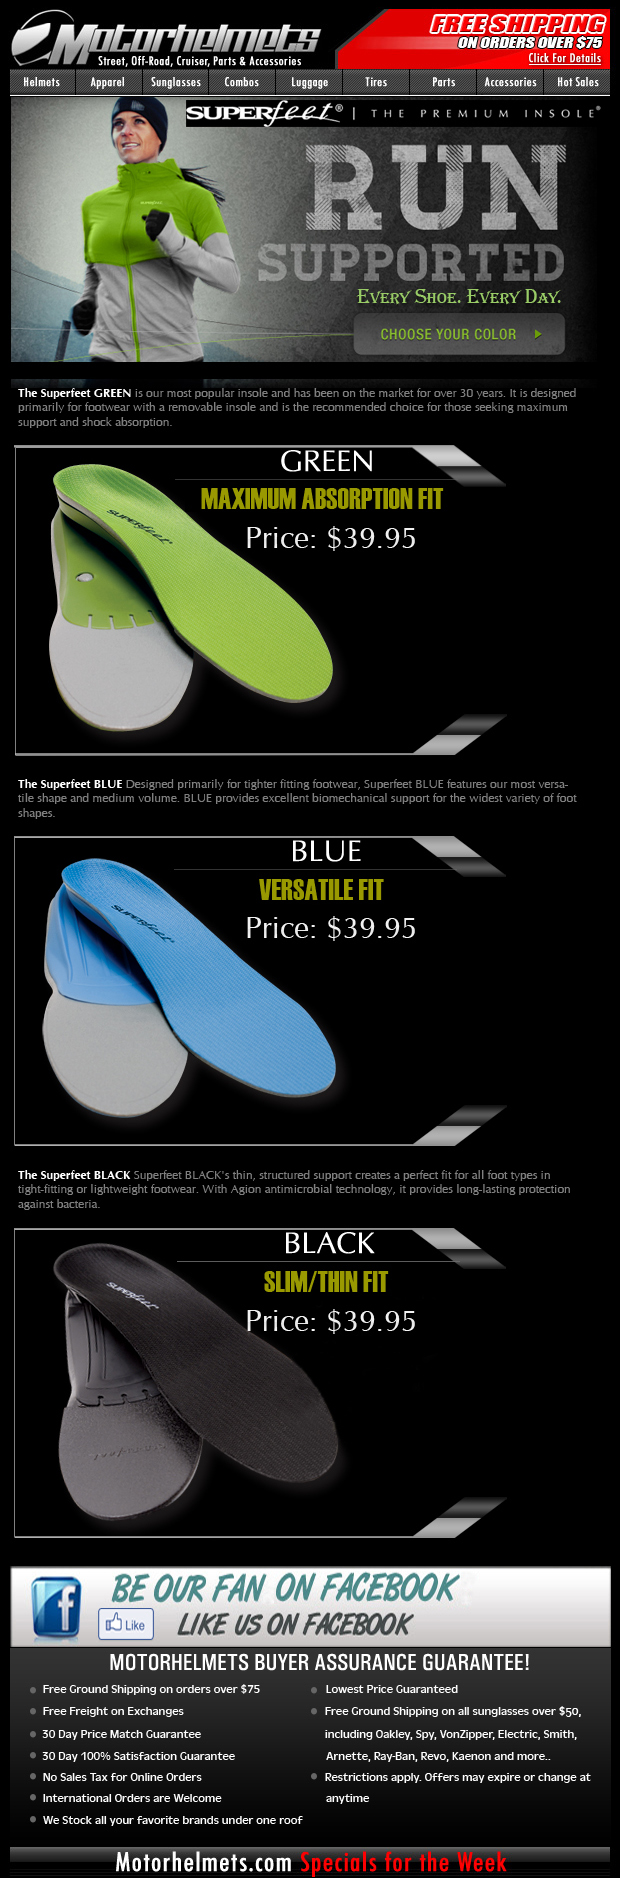 Introducing the Superfeet Premium Insoles...Available in 3 Colors!